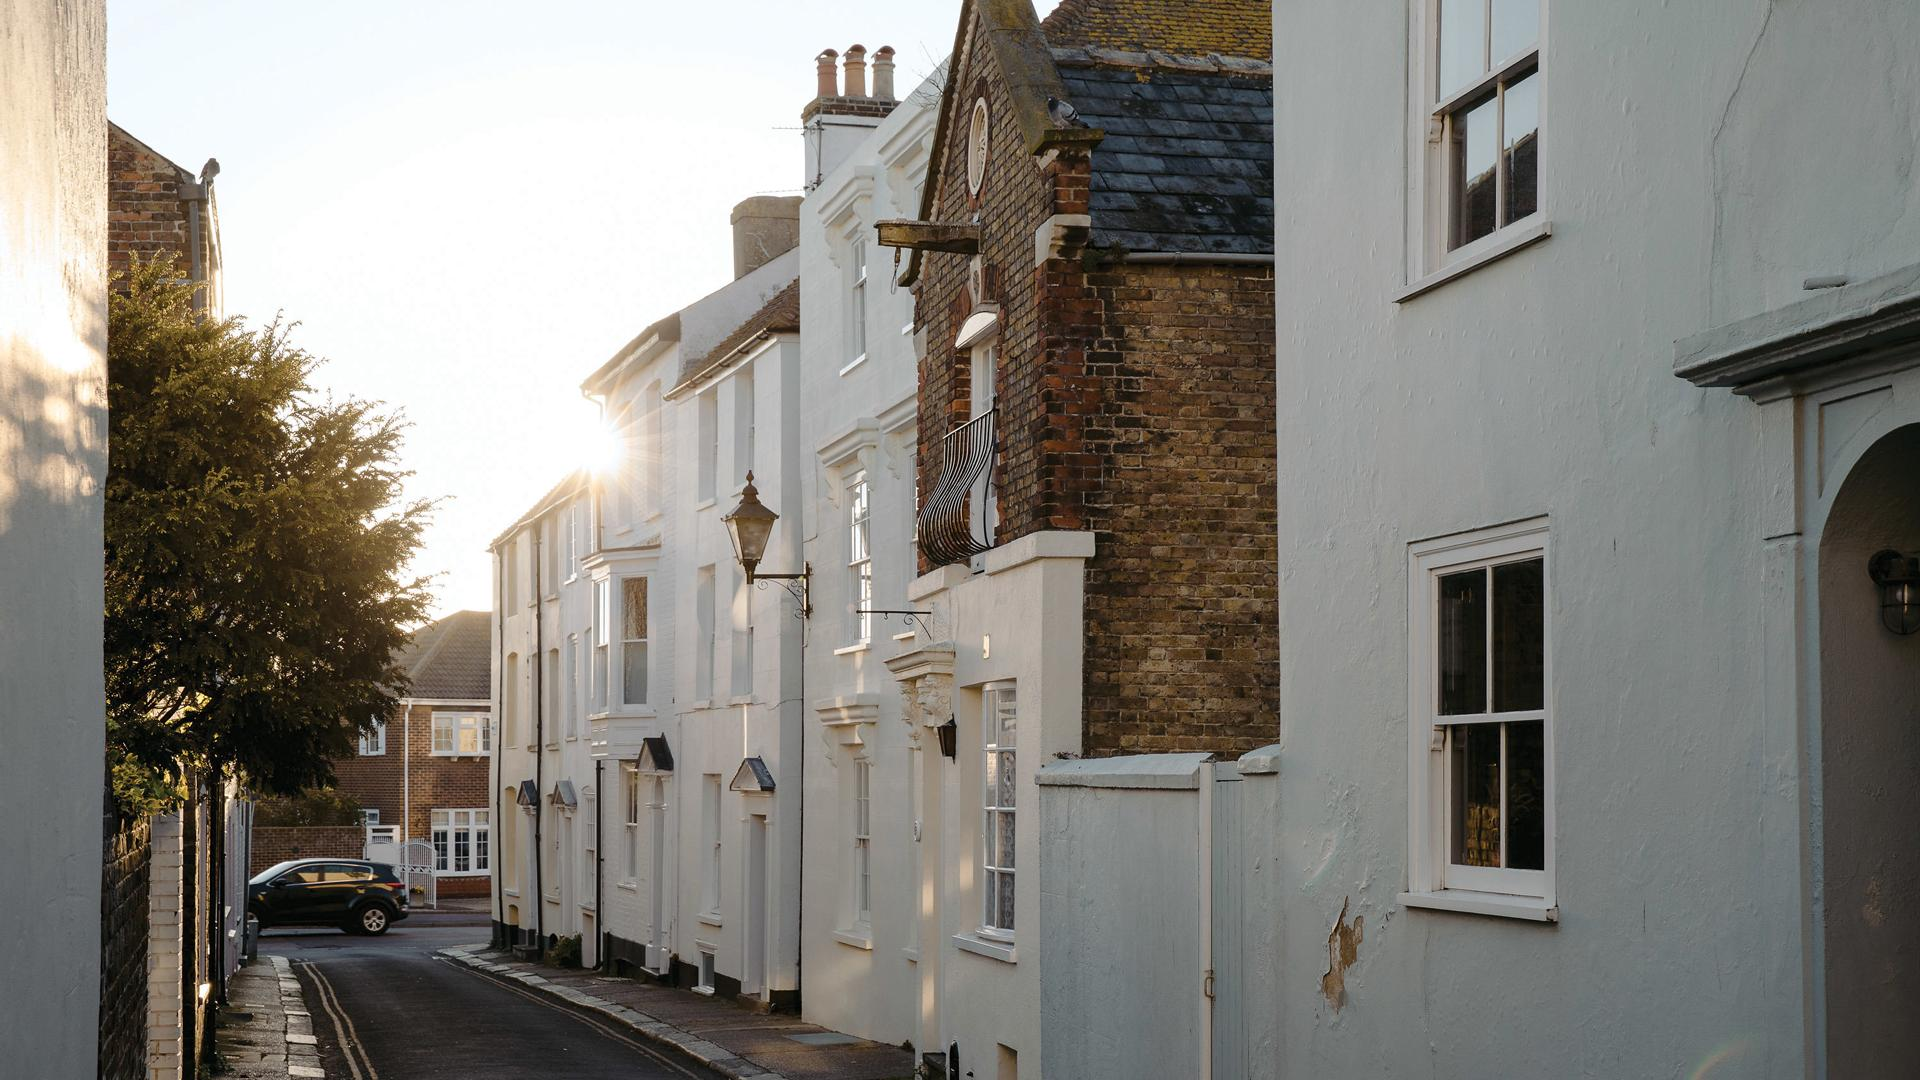 The Kent Coast, U.K.   Quaint houses in the town of Deal